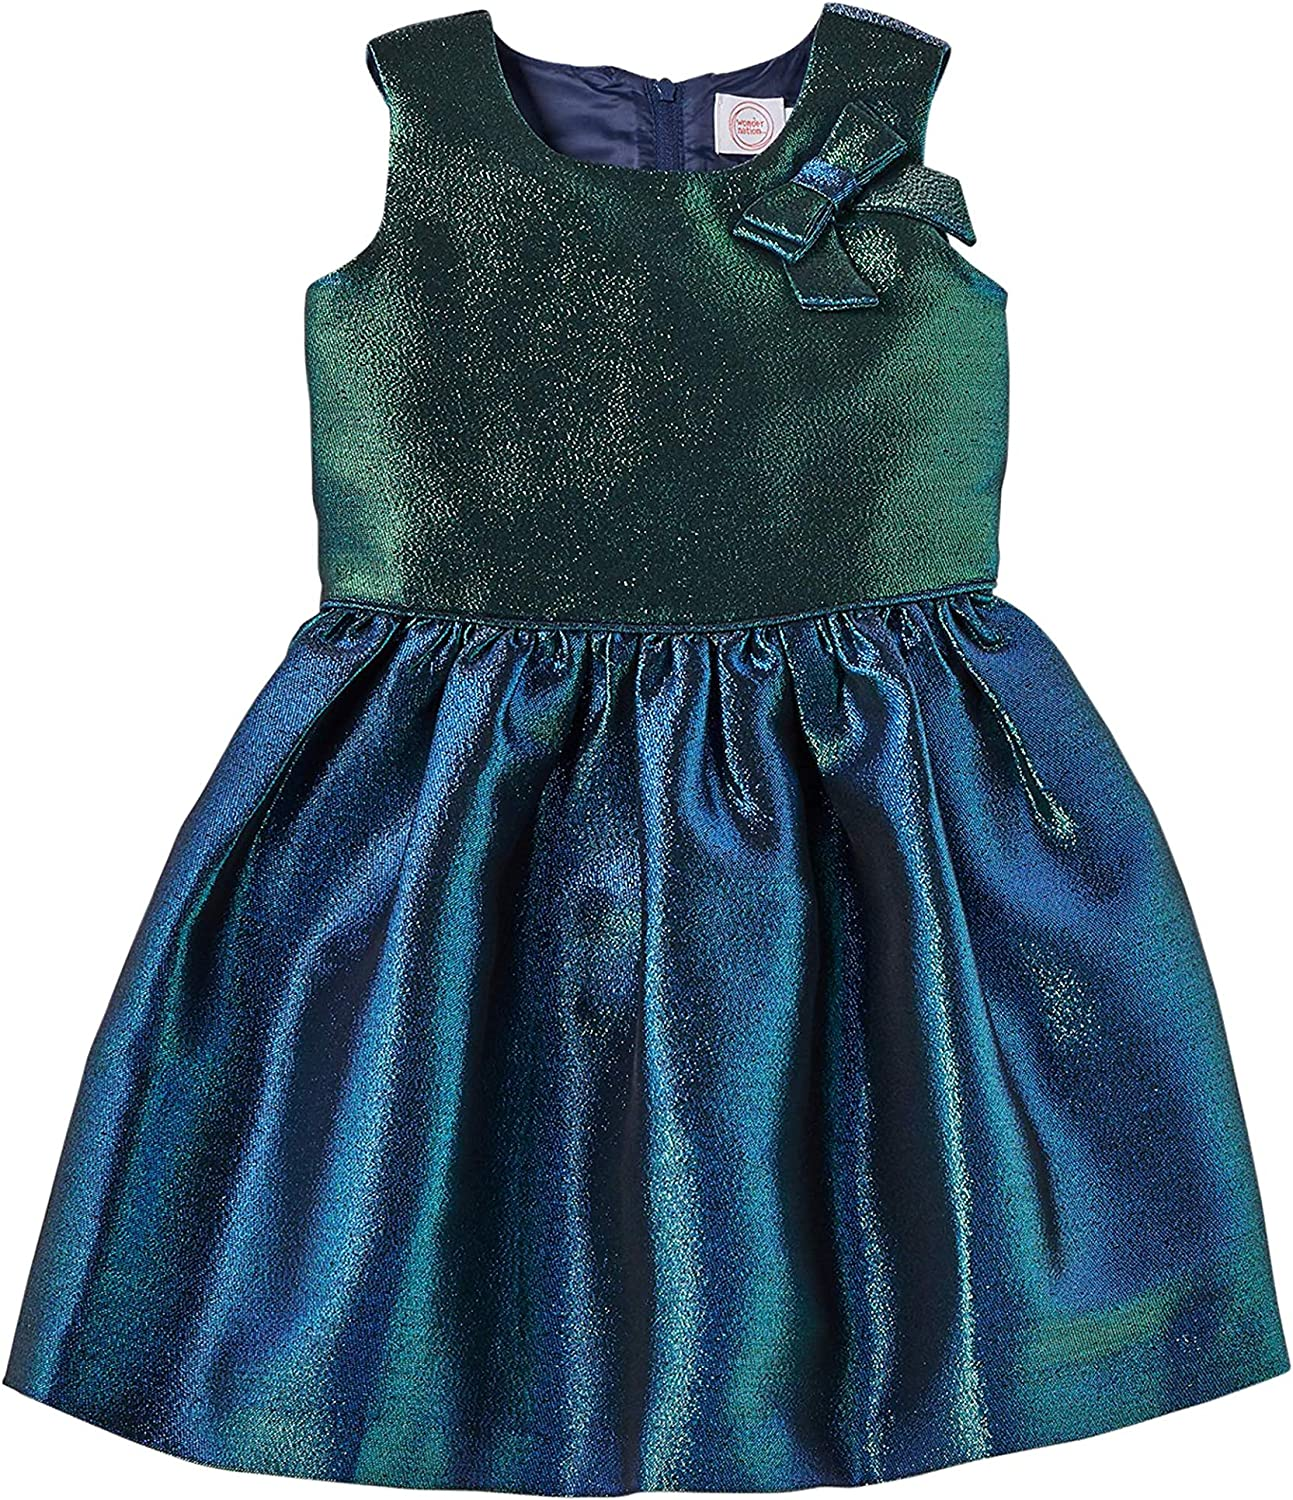 WonderNation Holiday, Christmas, Special Ocassion Iridescent Dress with Bow Detail